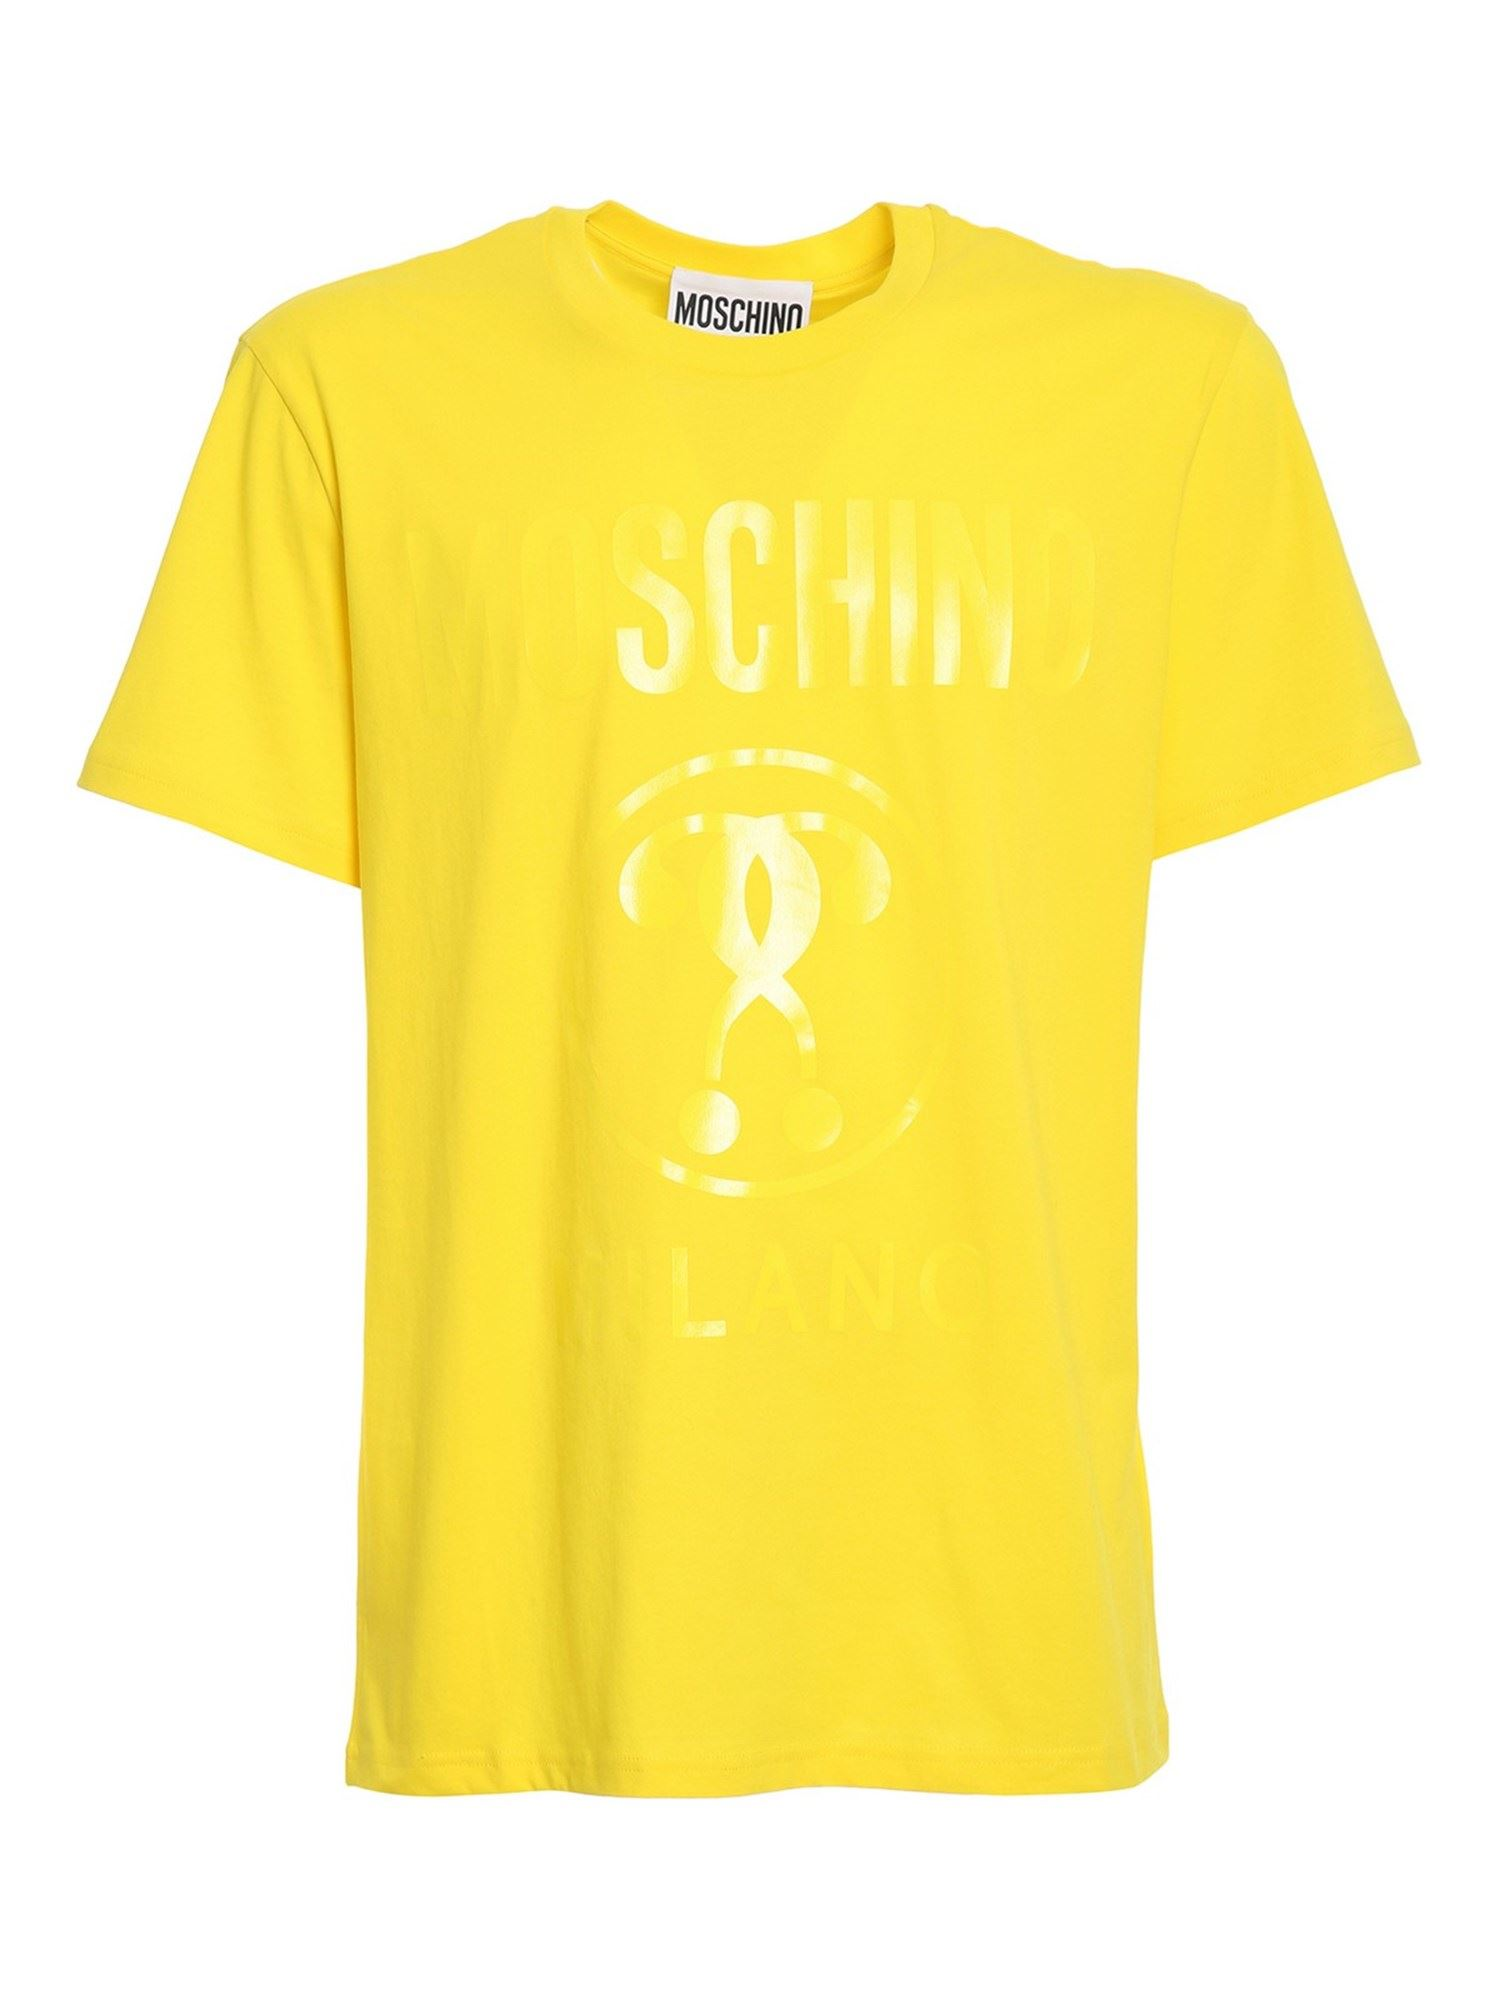 Moschino DOUBLE QUESTION MARK T-SHIRT IN YELLOW